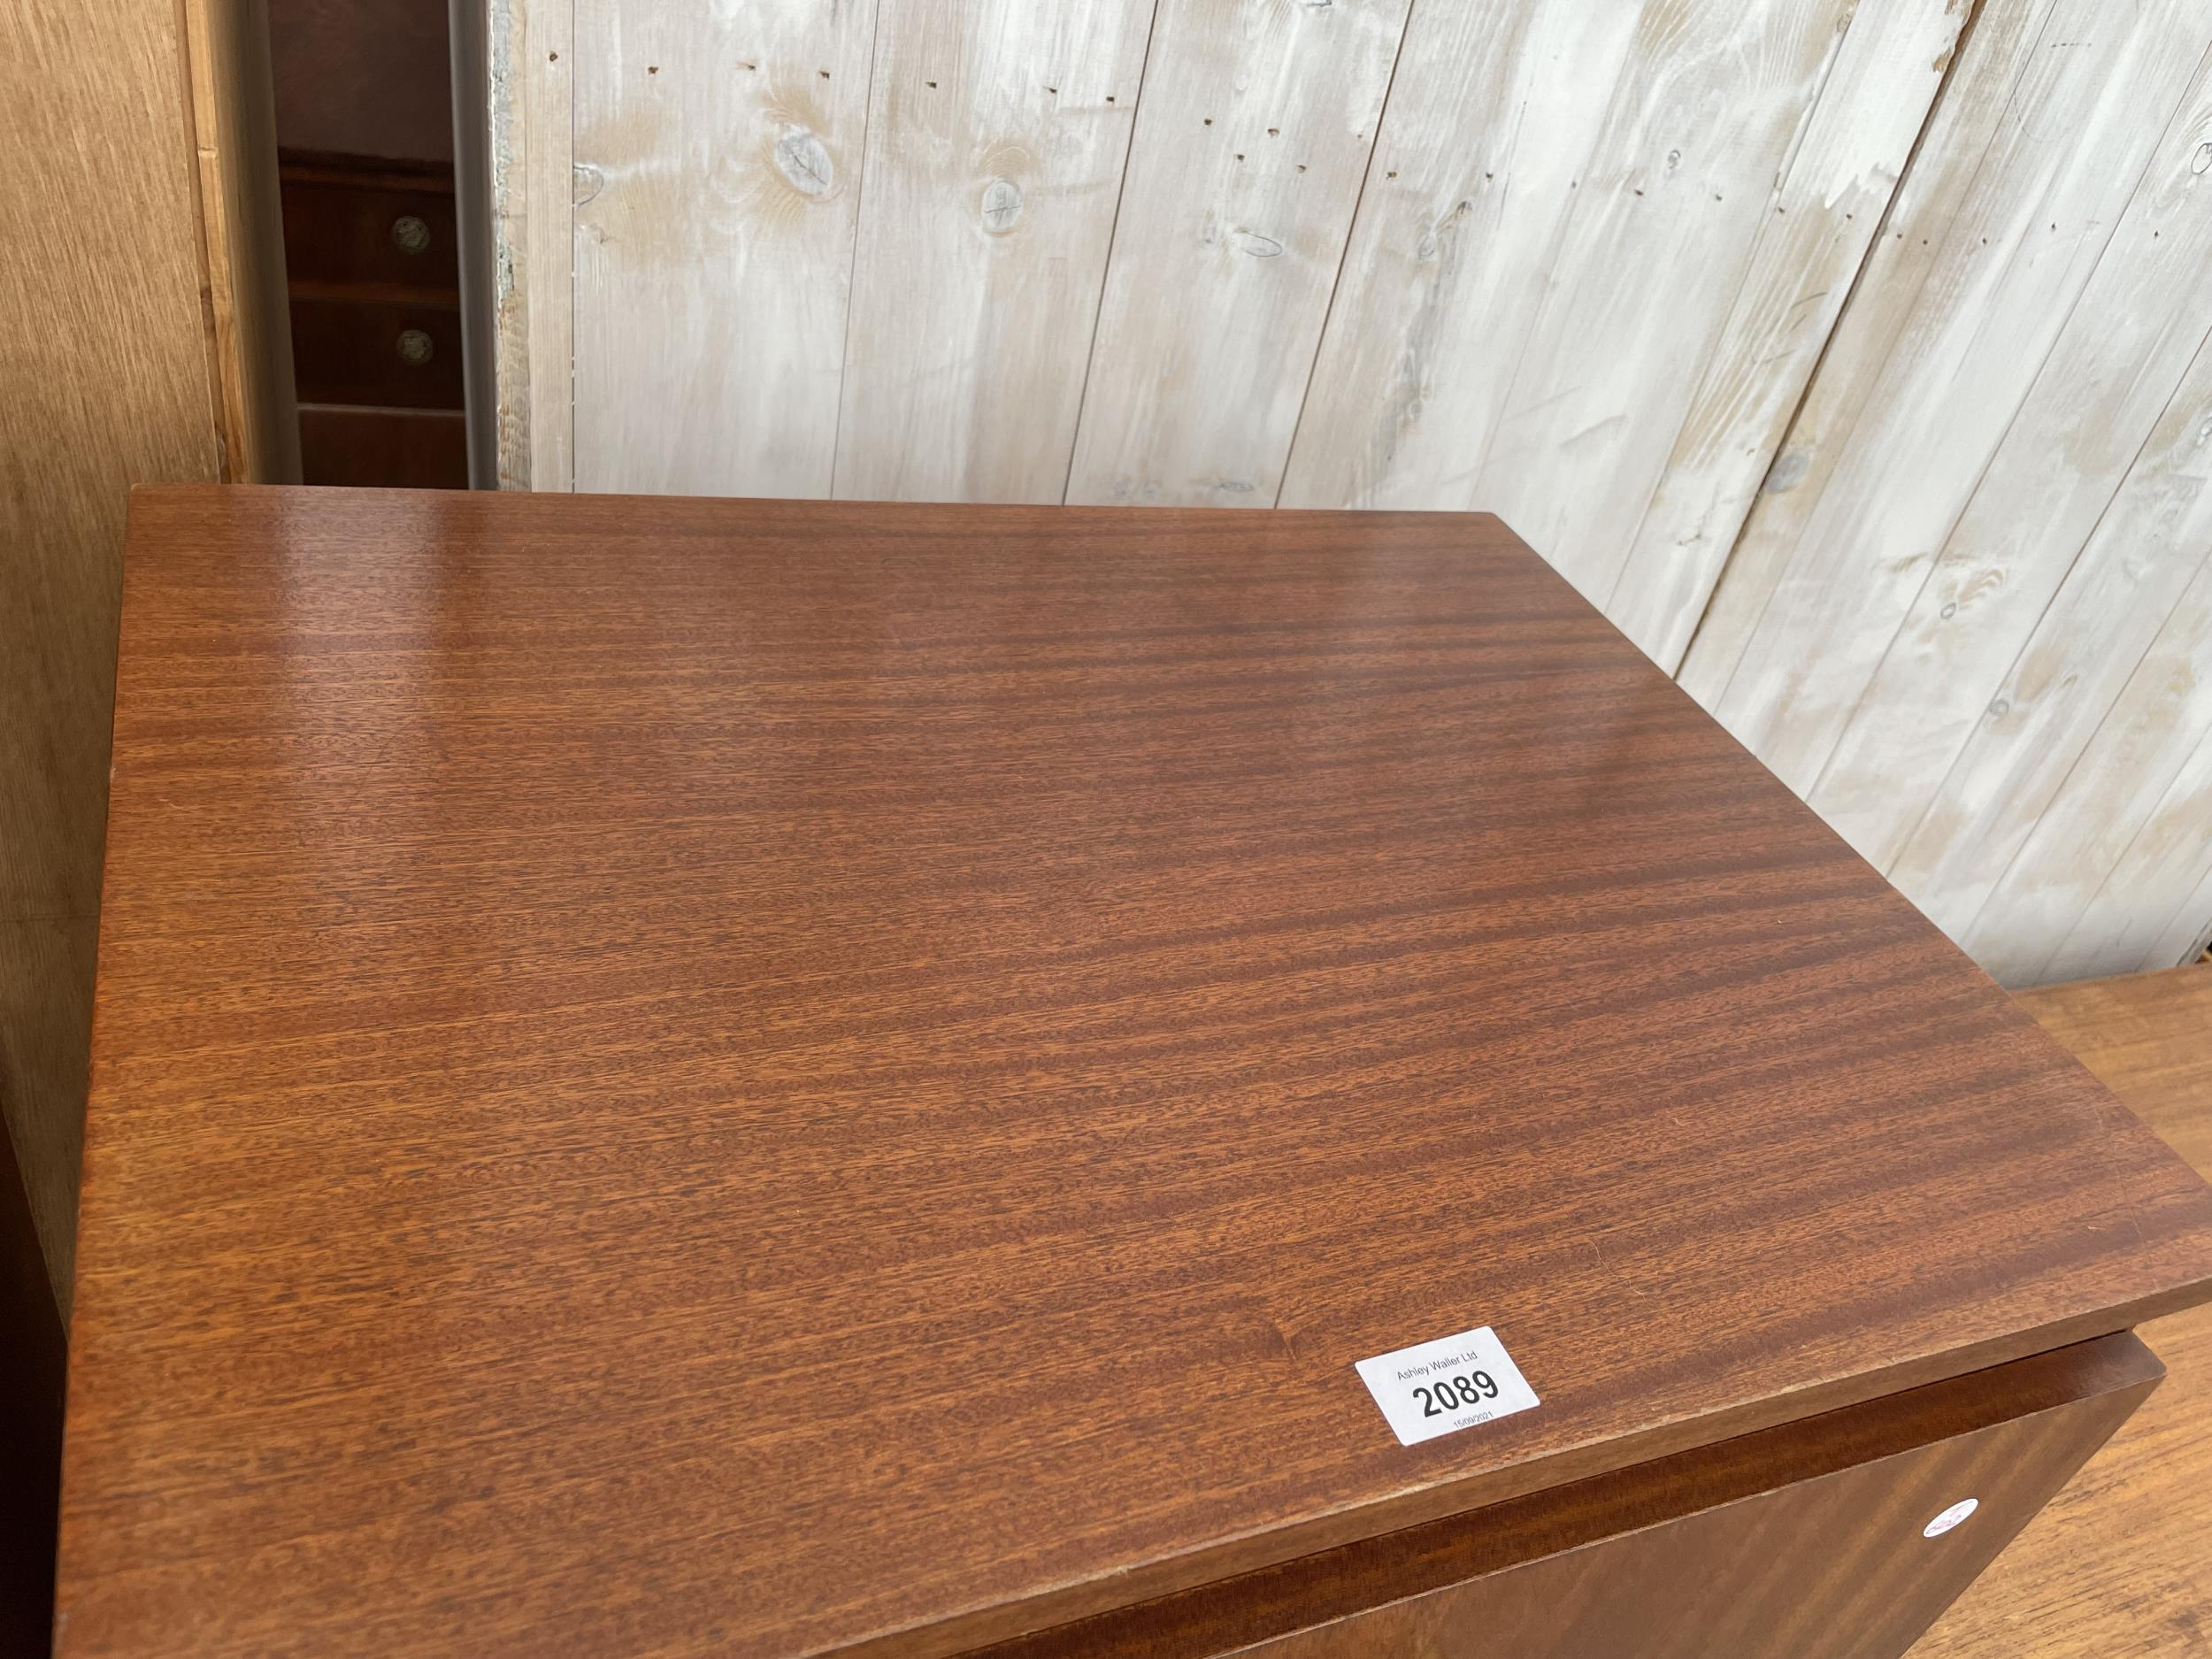 """A RETRO TEAK REMPLOY CHEST OF SIX DRAWERS, 21.5"""" WIDE - Image 2 of 2"""